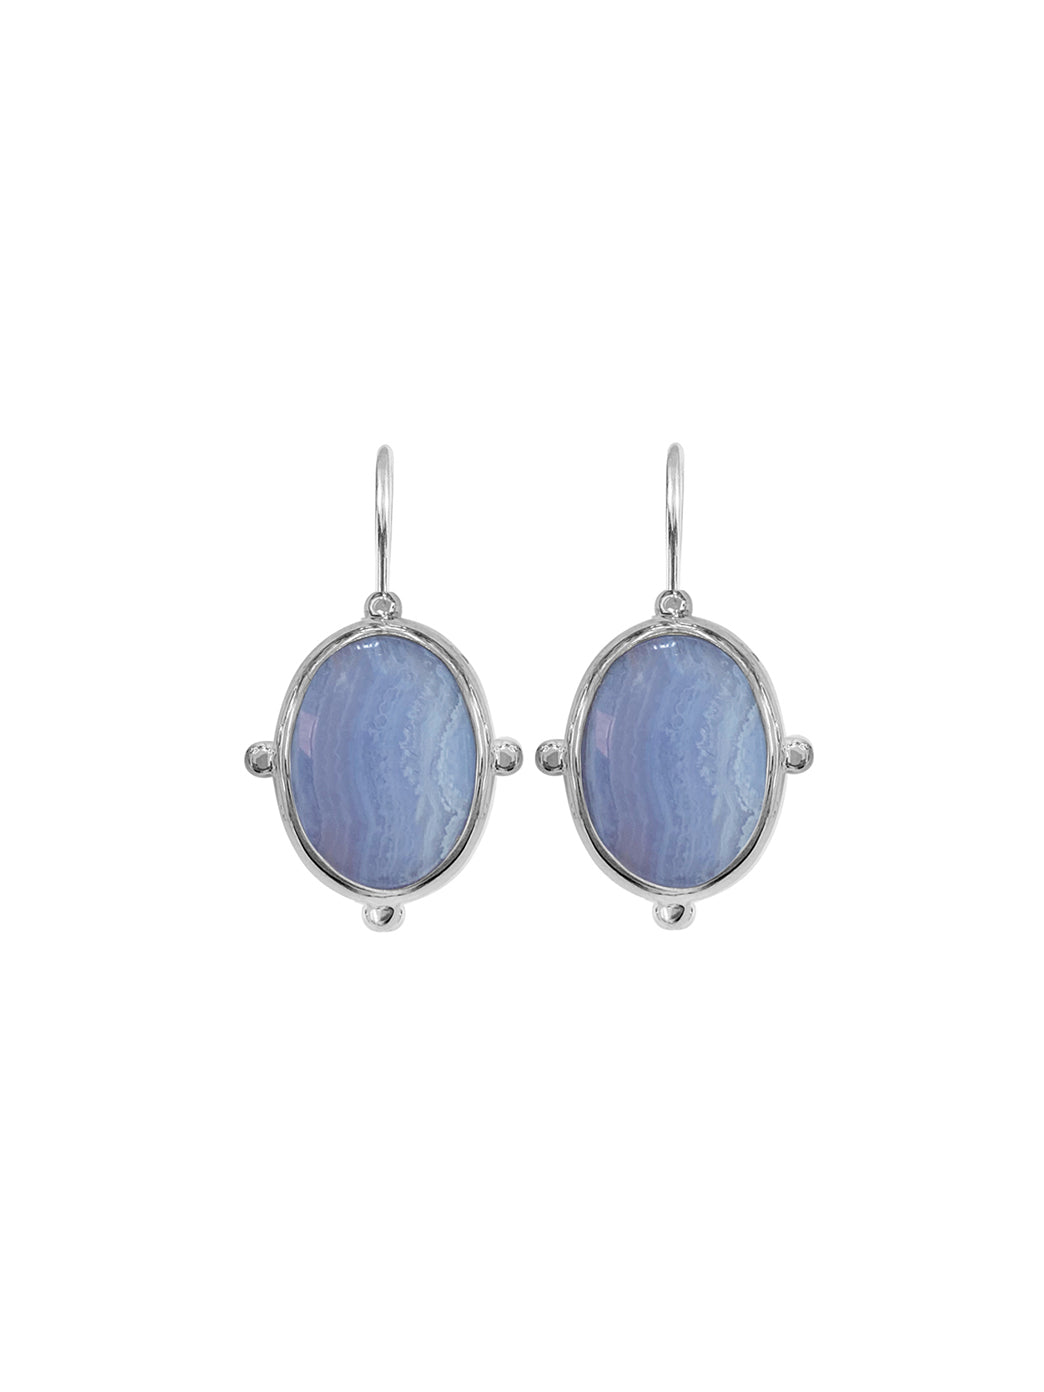 Fiorina Jewellery Oval Button Earrings Chalcedony